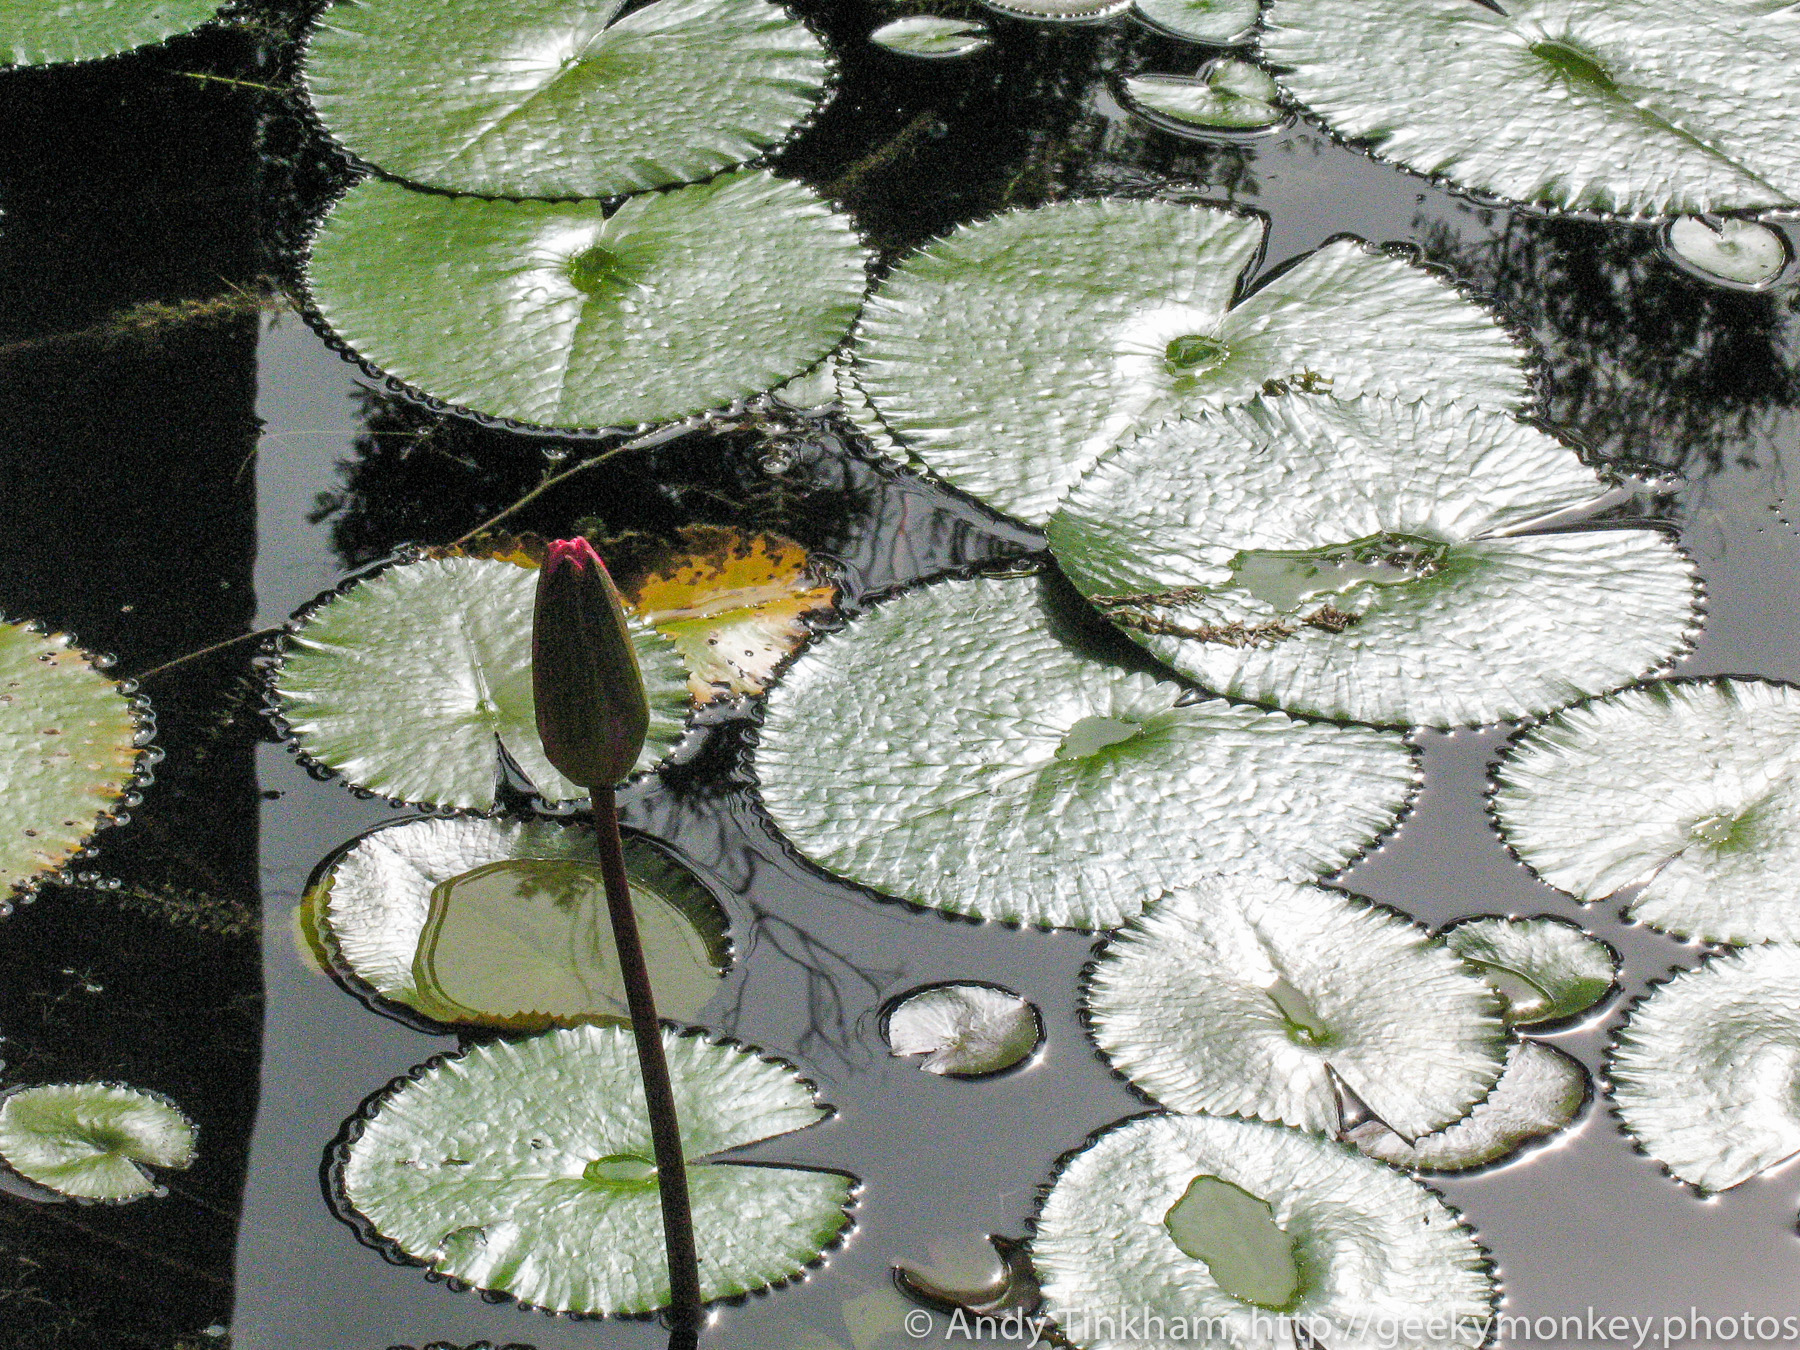 Water Lily Lily Pads Geeky Monkey Photos Andy Tinkham